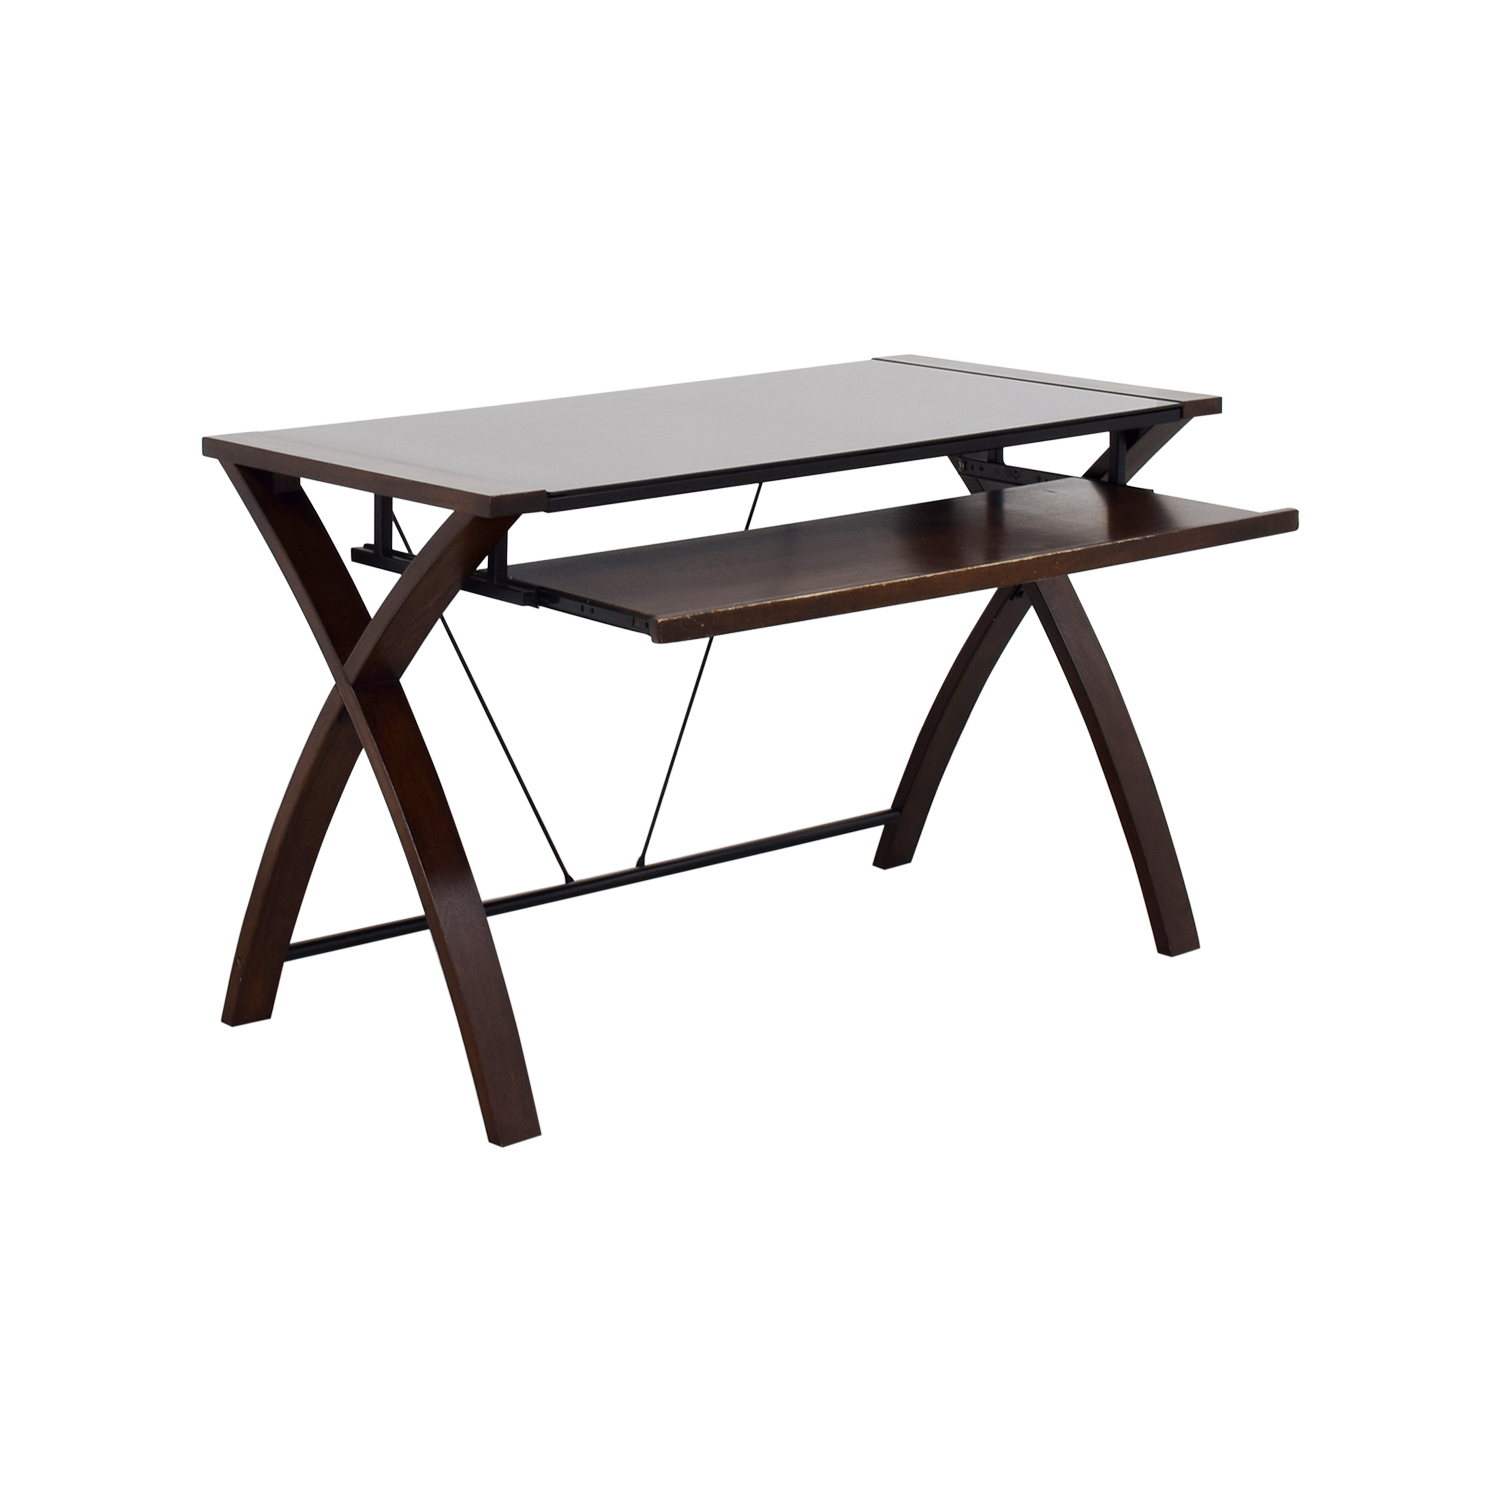 off computer shelf desk tables used furniture end second hand asian table small black metal garden home hardware patio rugs that match brown leather foot tic uttermost genell